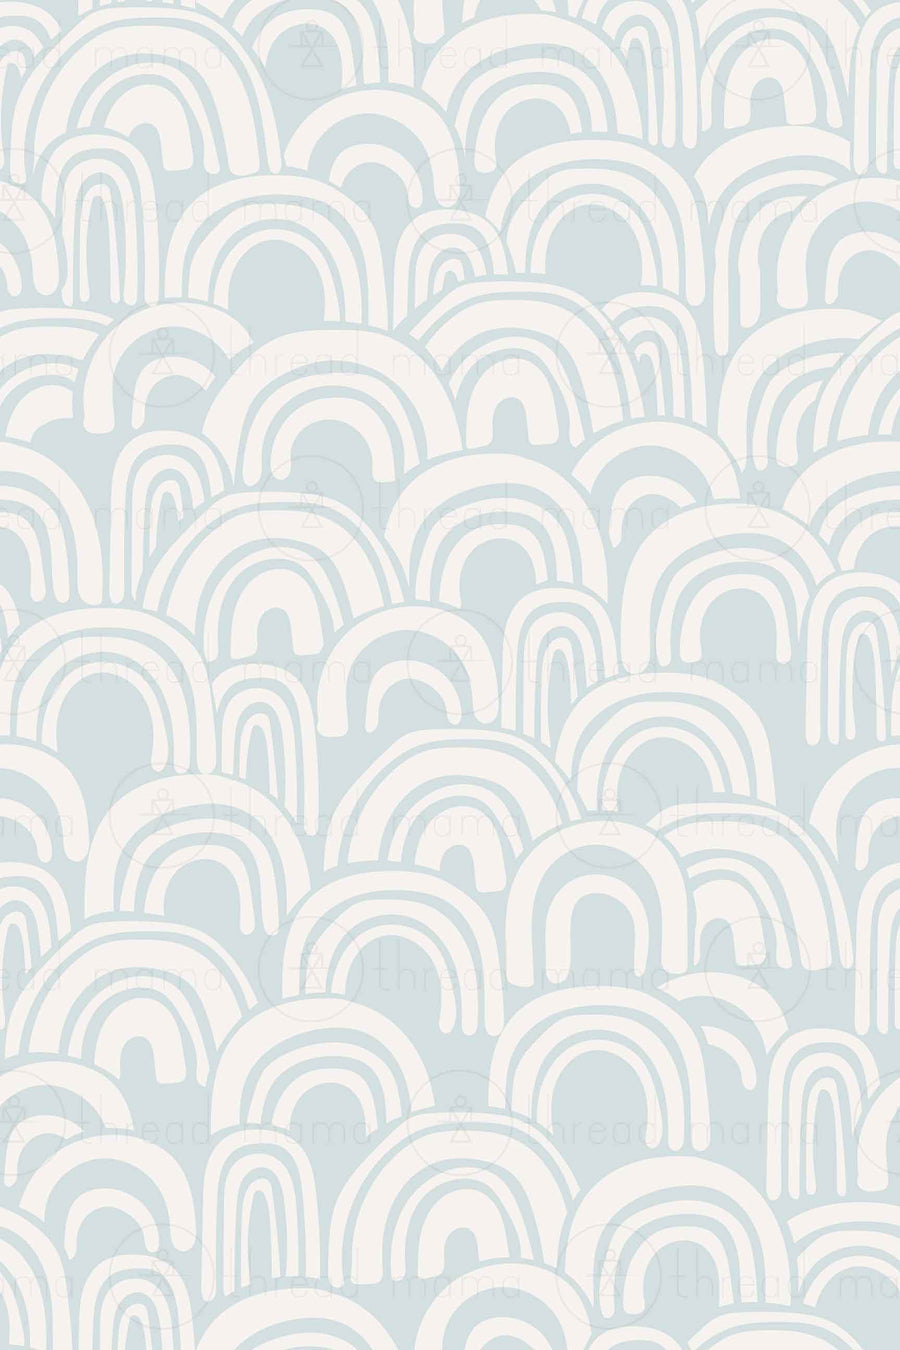 Repeating Pattern 48D (Seamless)